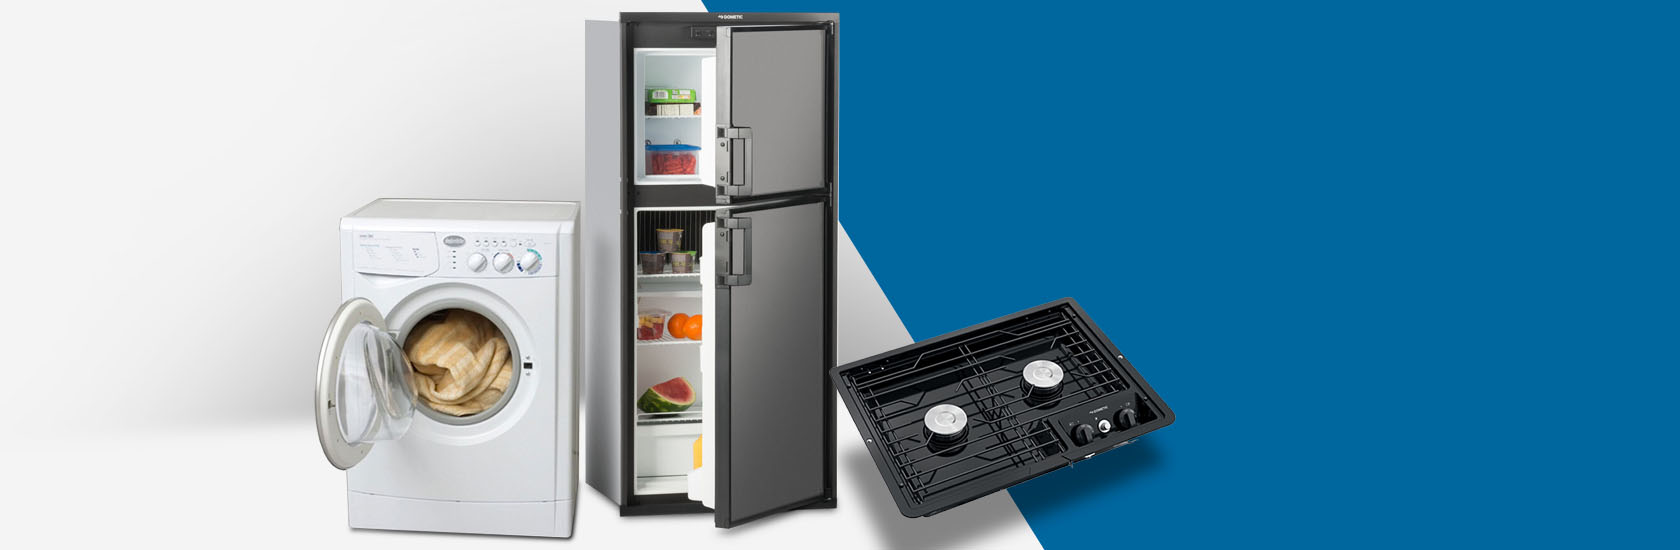 Save up to $300 on RV Appliances